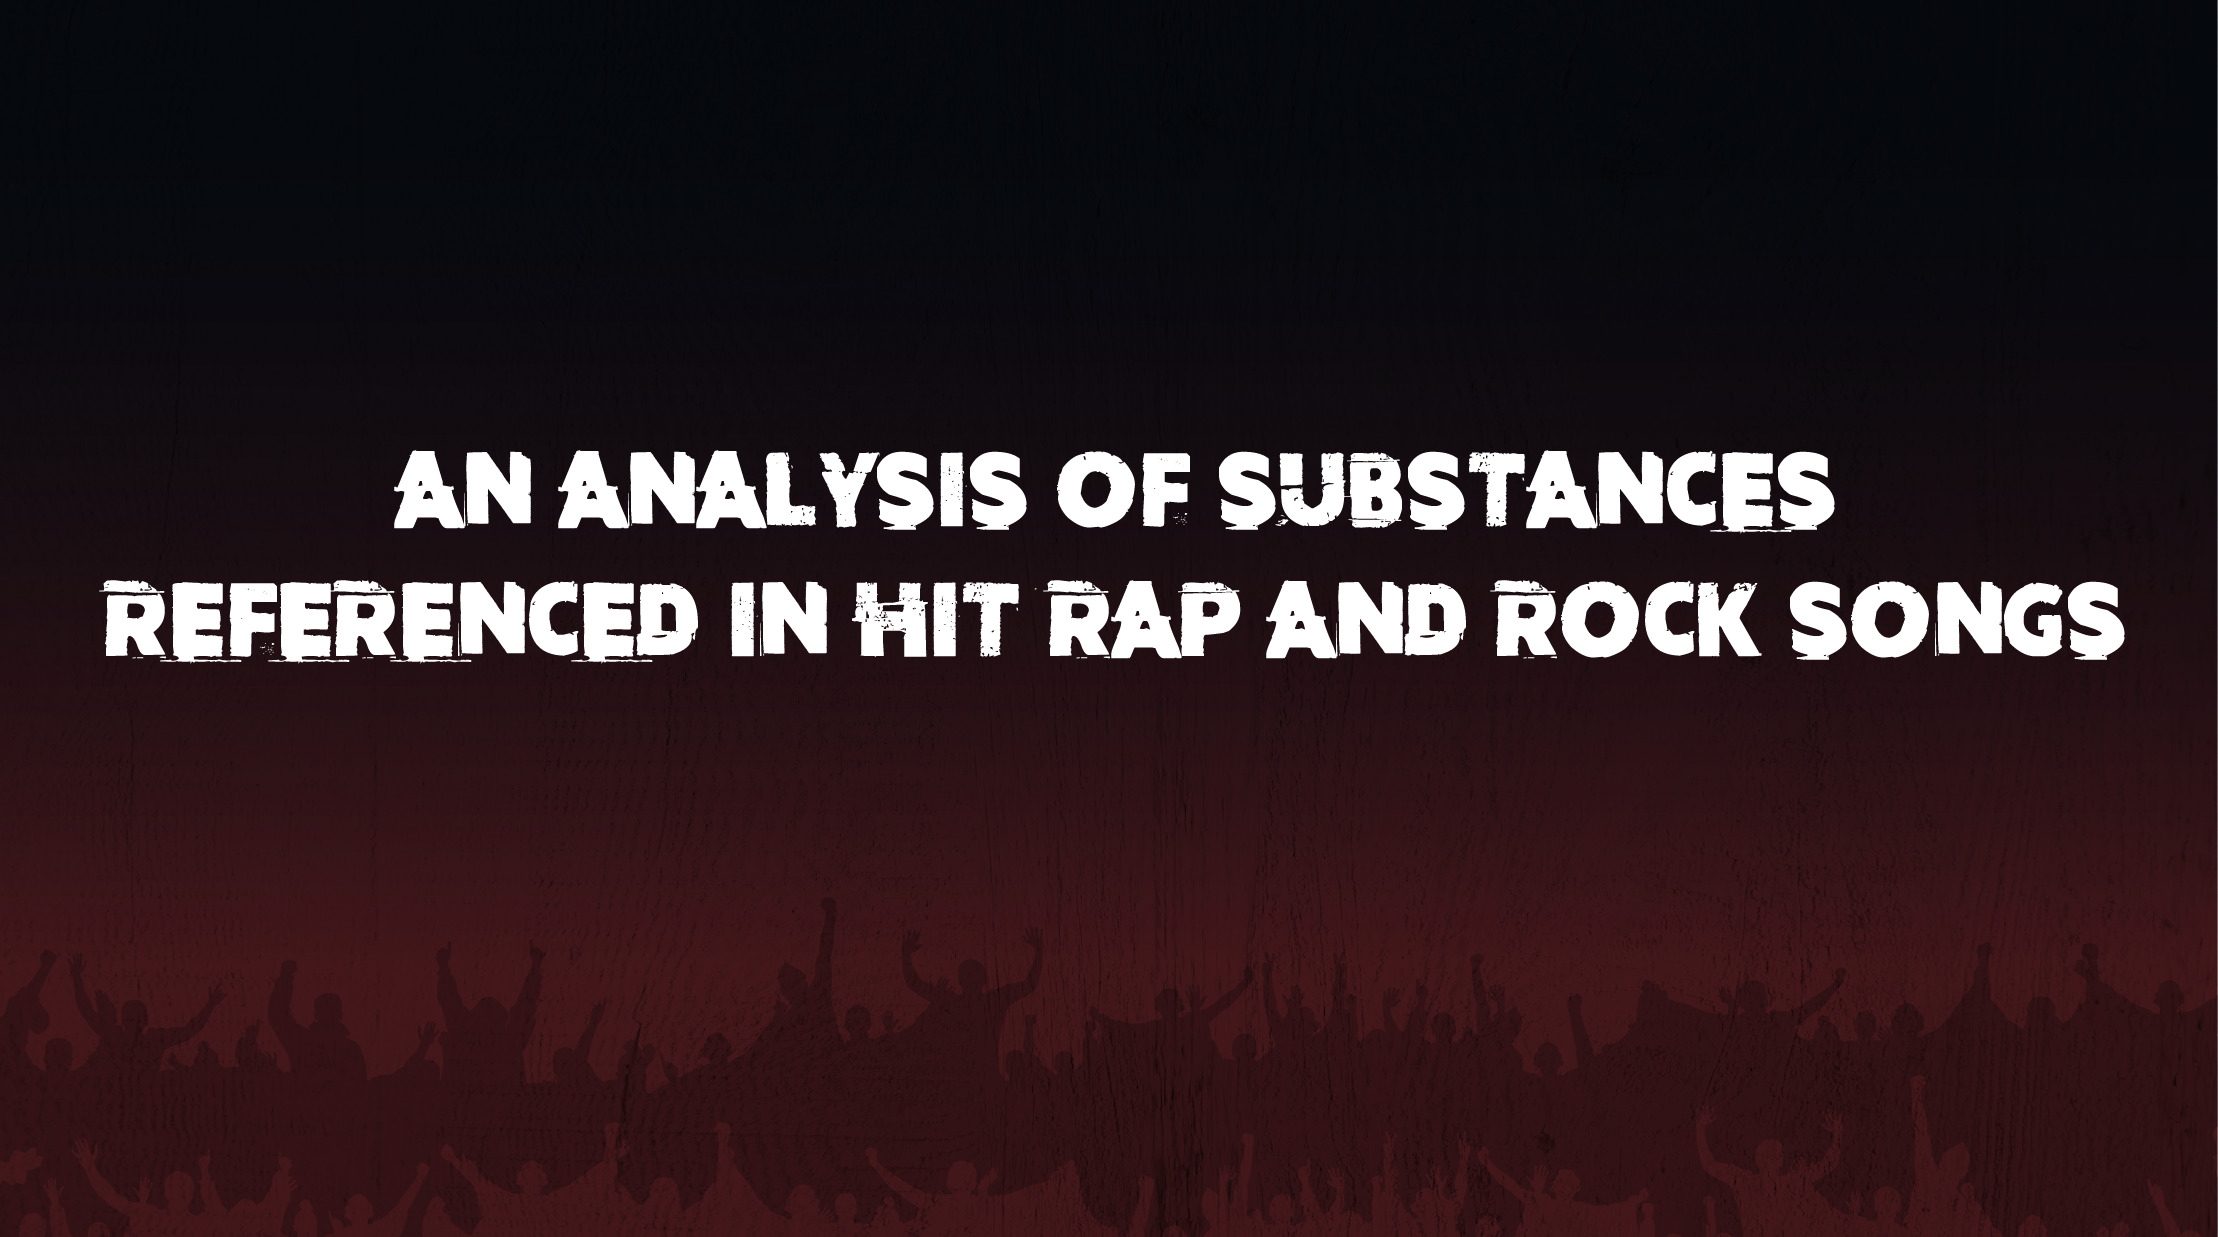 An Analysis of Substances Referenced in Hit Rap and Rock Songs